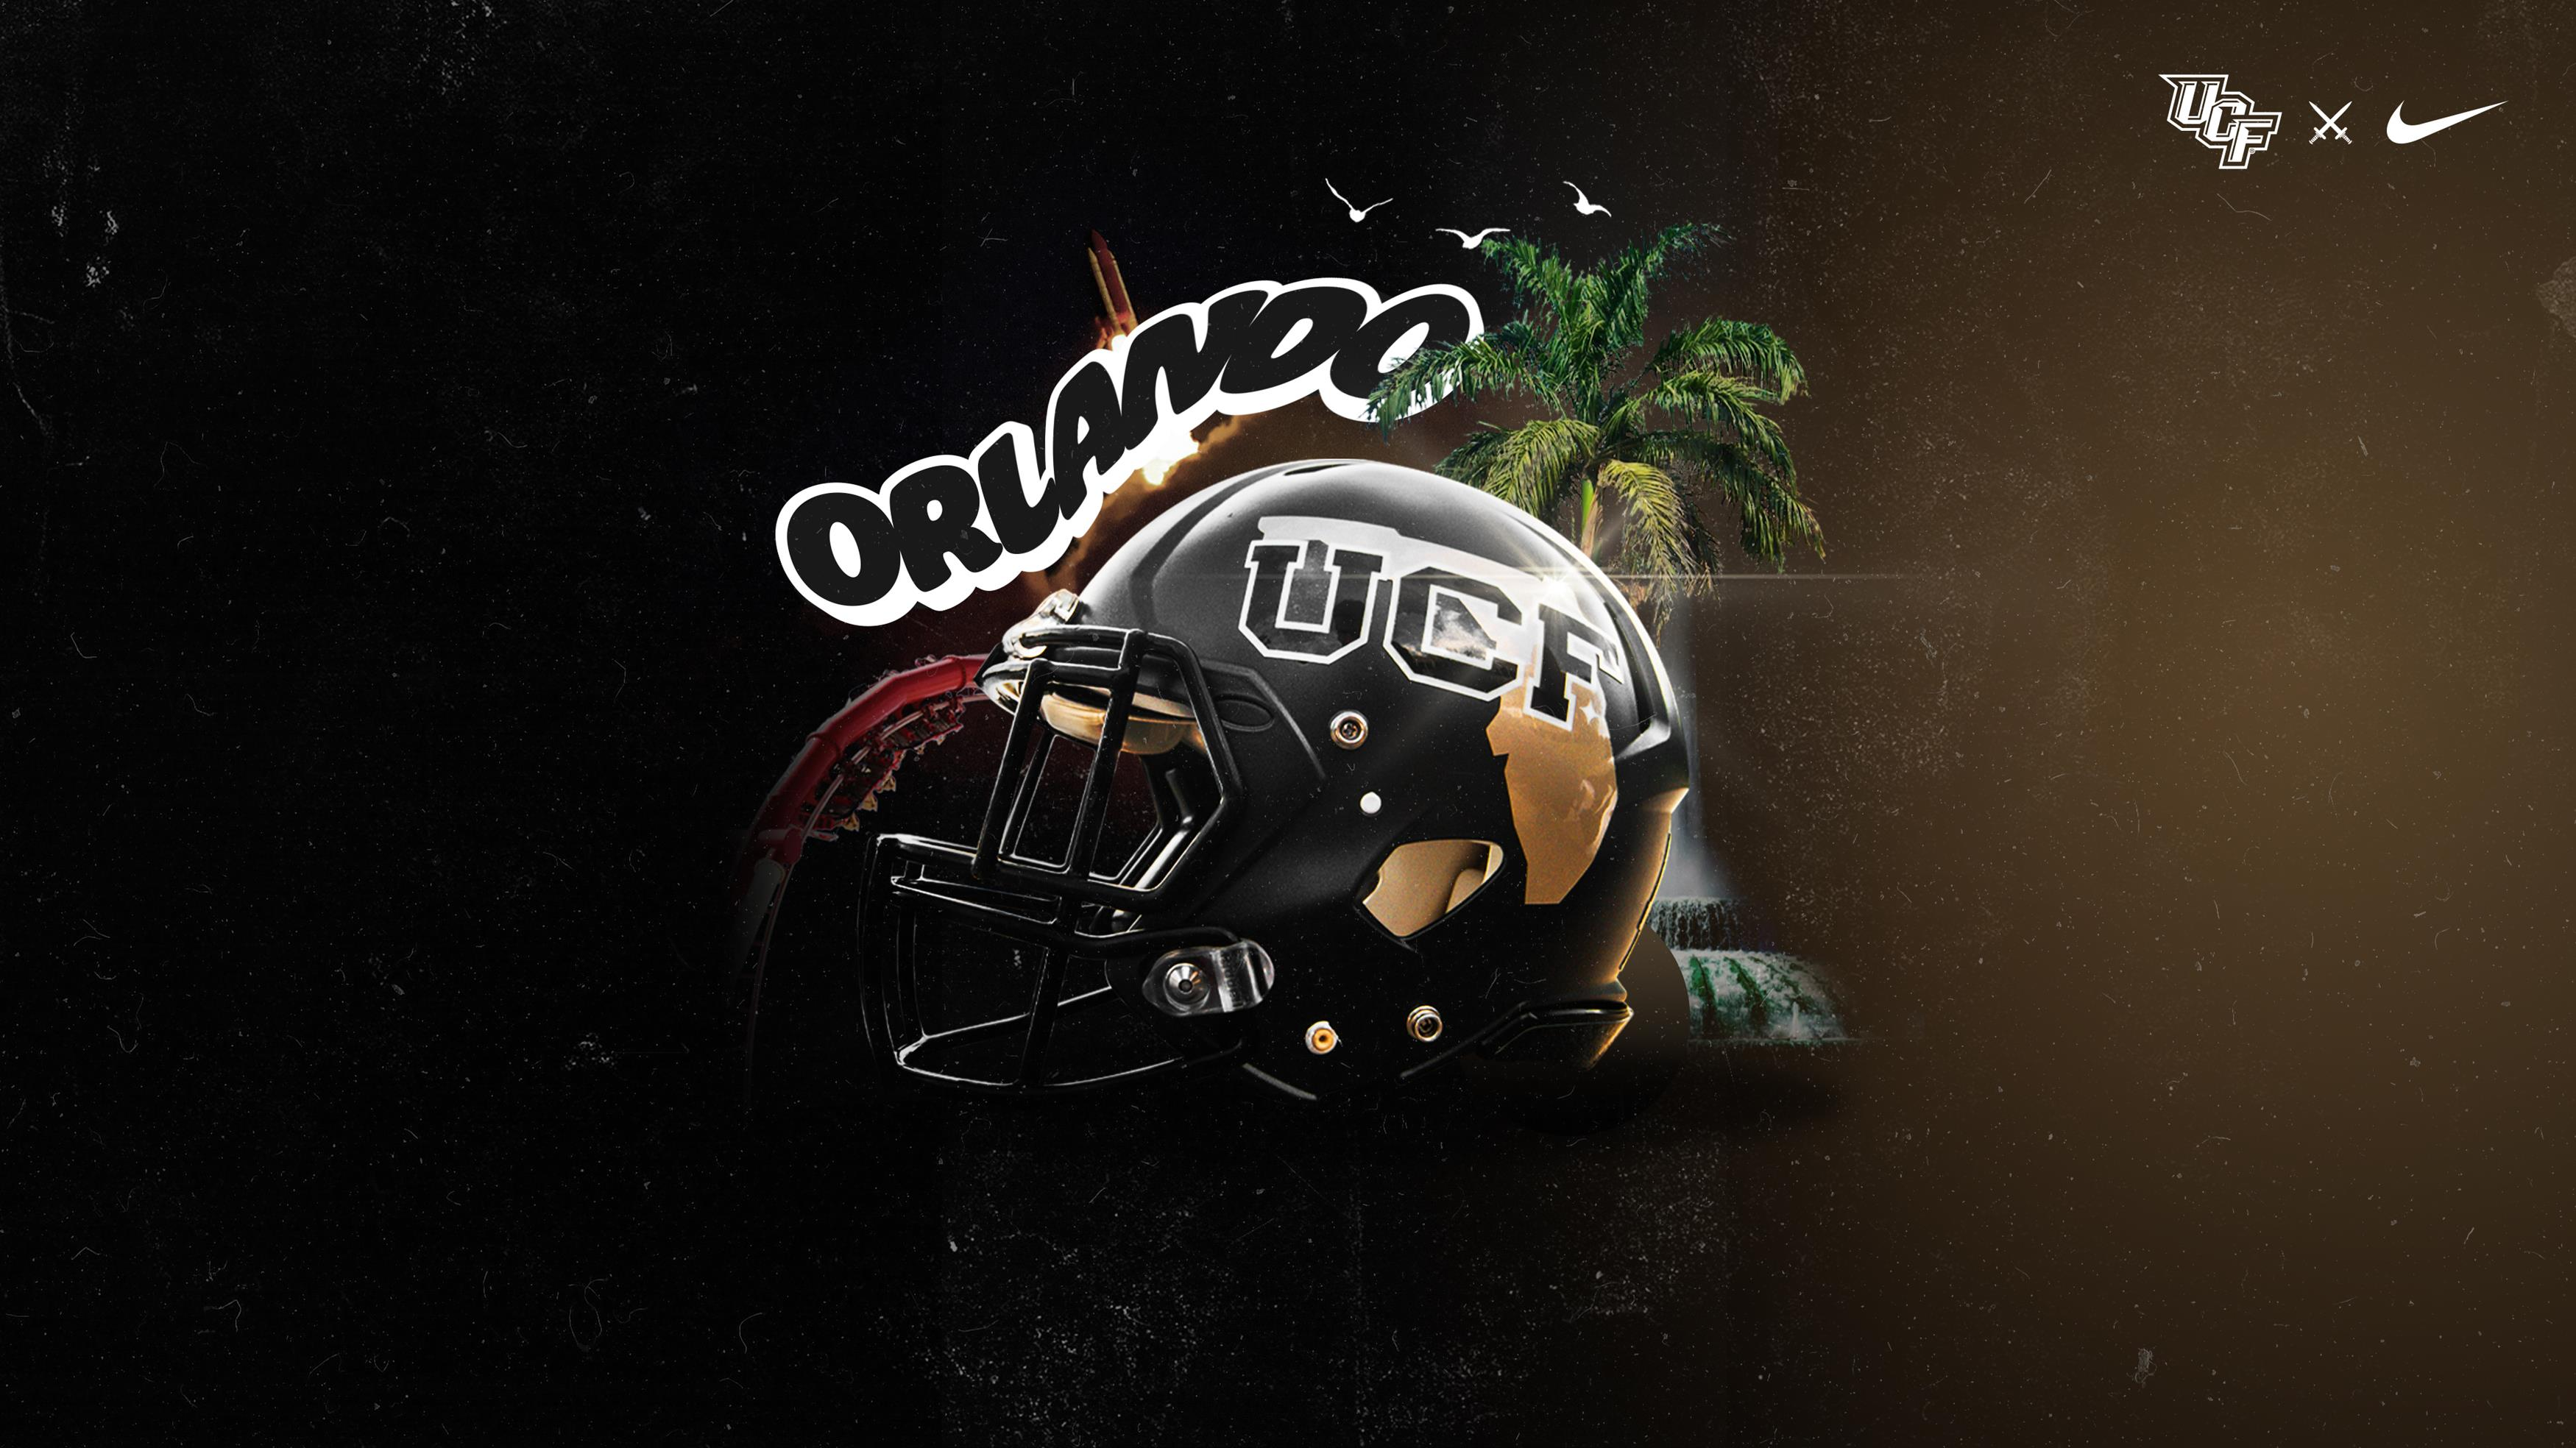 Ucf Knights Wallpapers Ucf Athletics